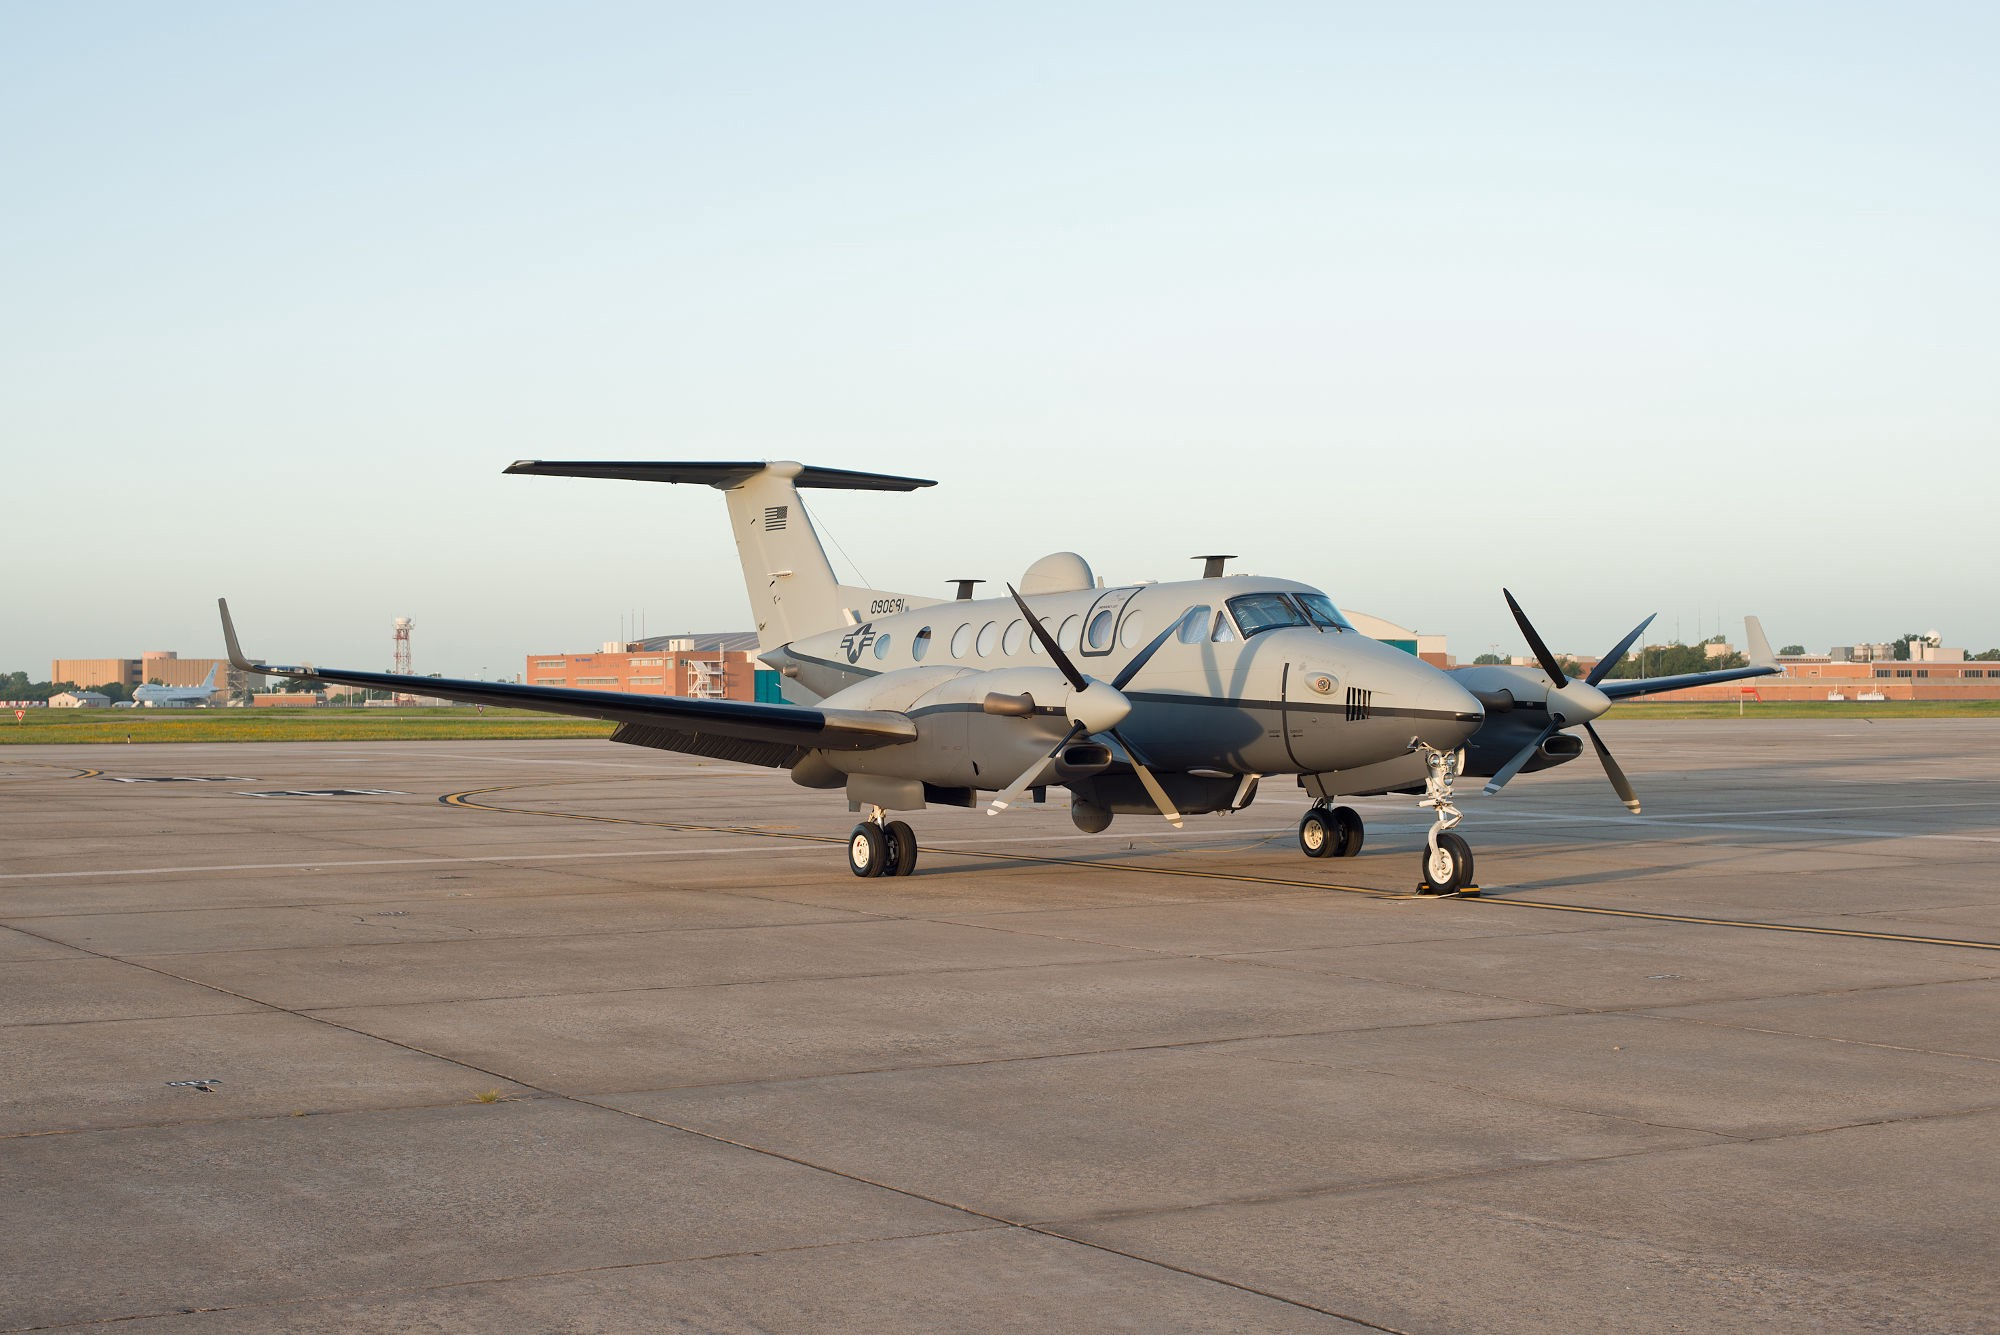 MC-12W Liberty Spy Plane of US Air Force Spotted in Northern Iraq (Photos)